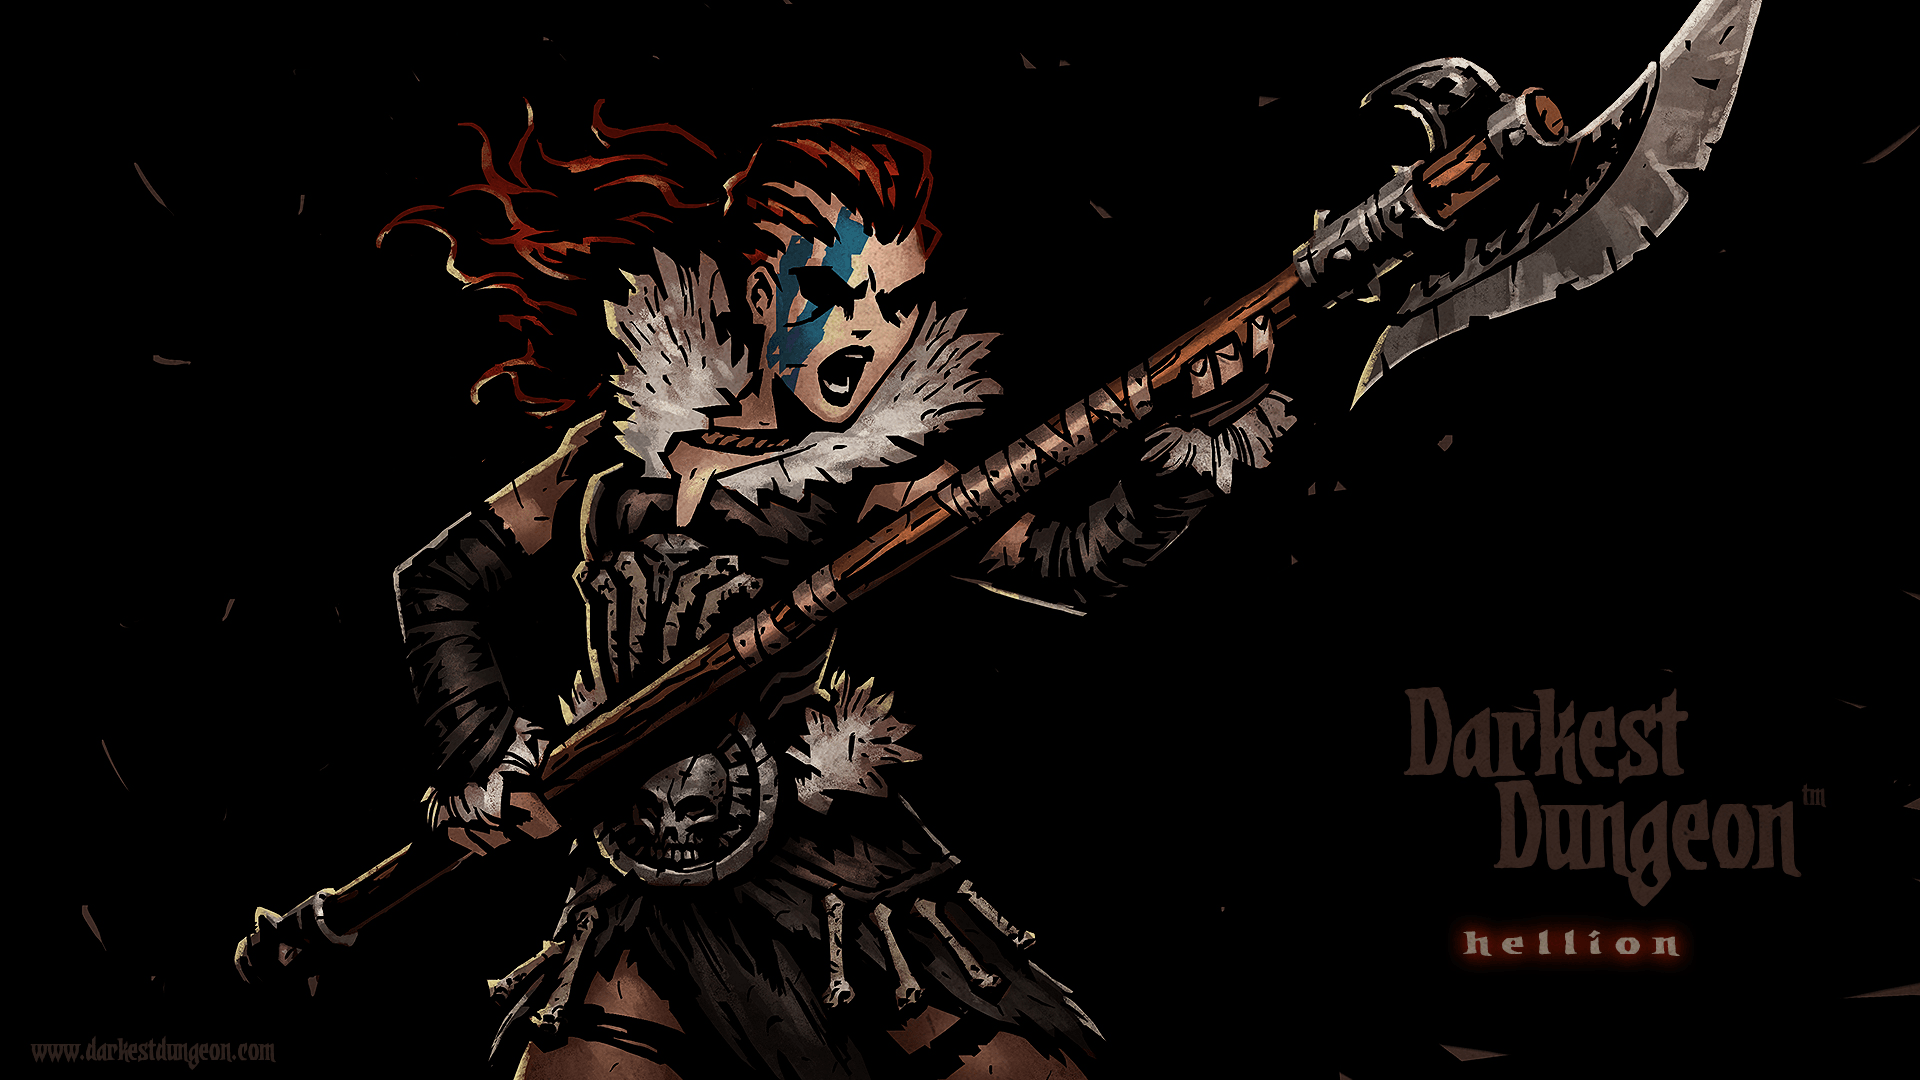 The Darkest Dungeon Character Guide Blogs Gamepedia